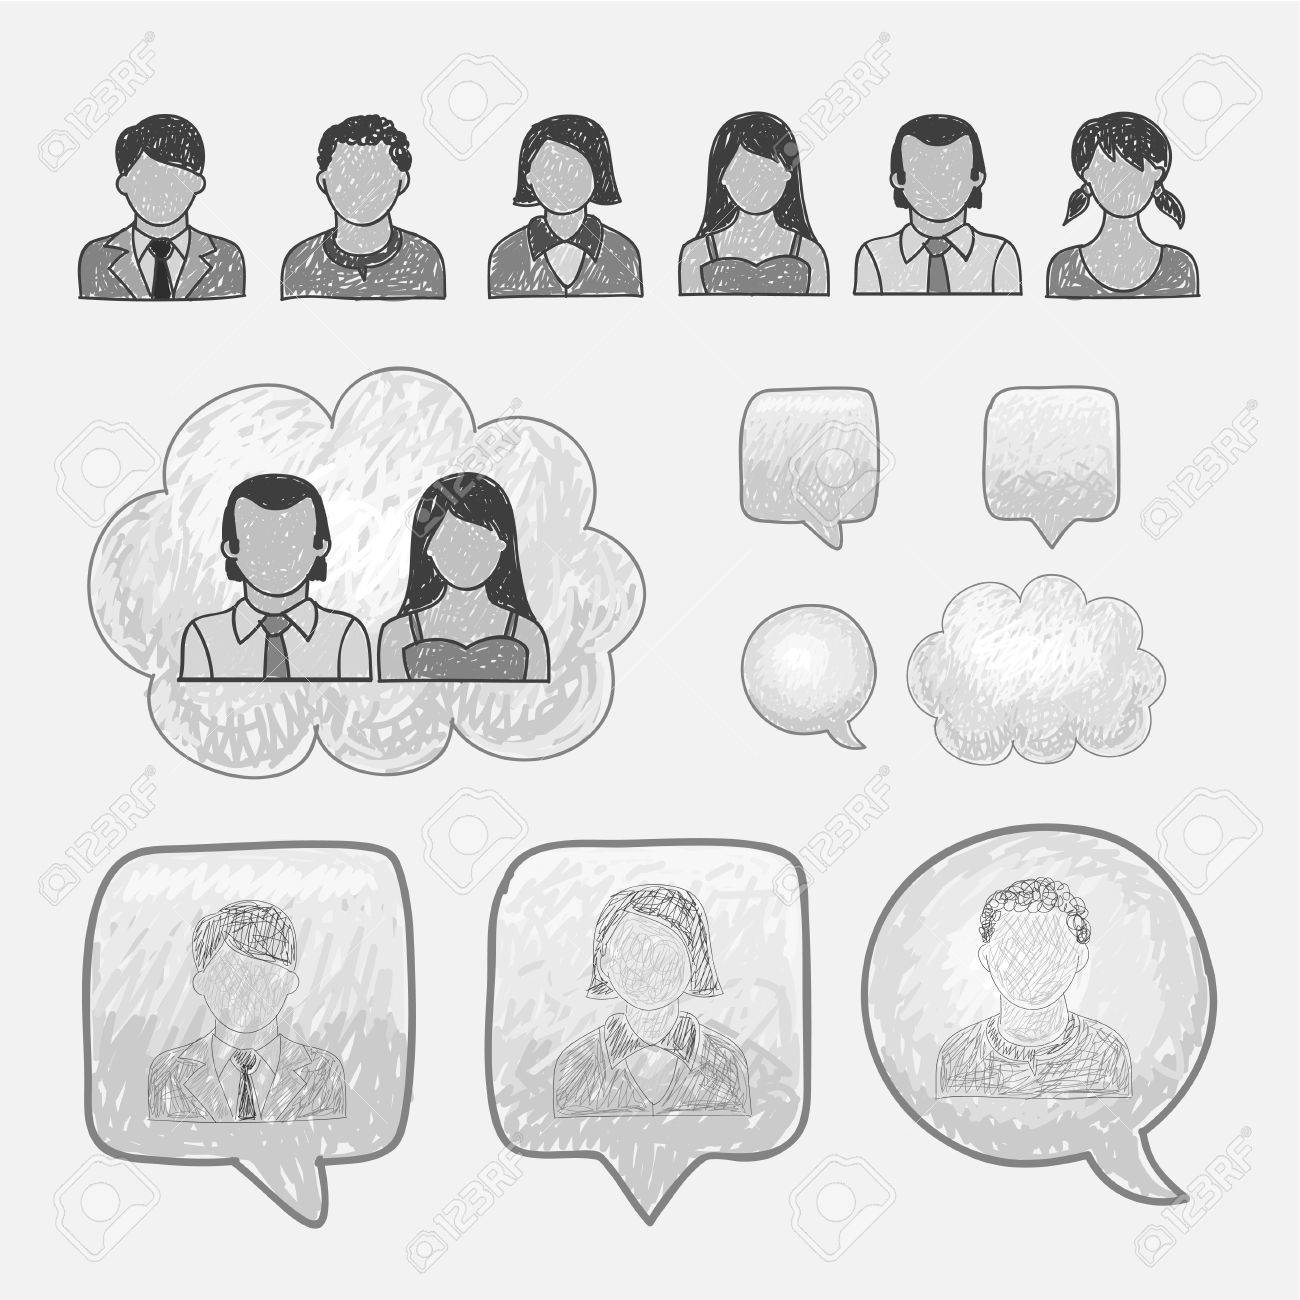 Head People Line Icons Stock Vector - 17660468